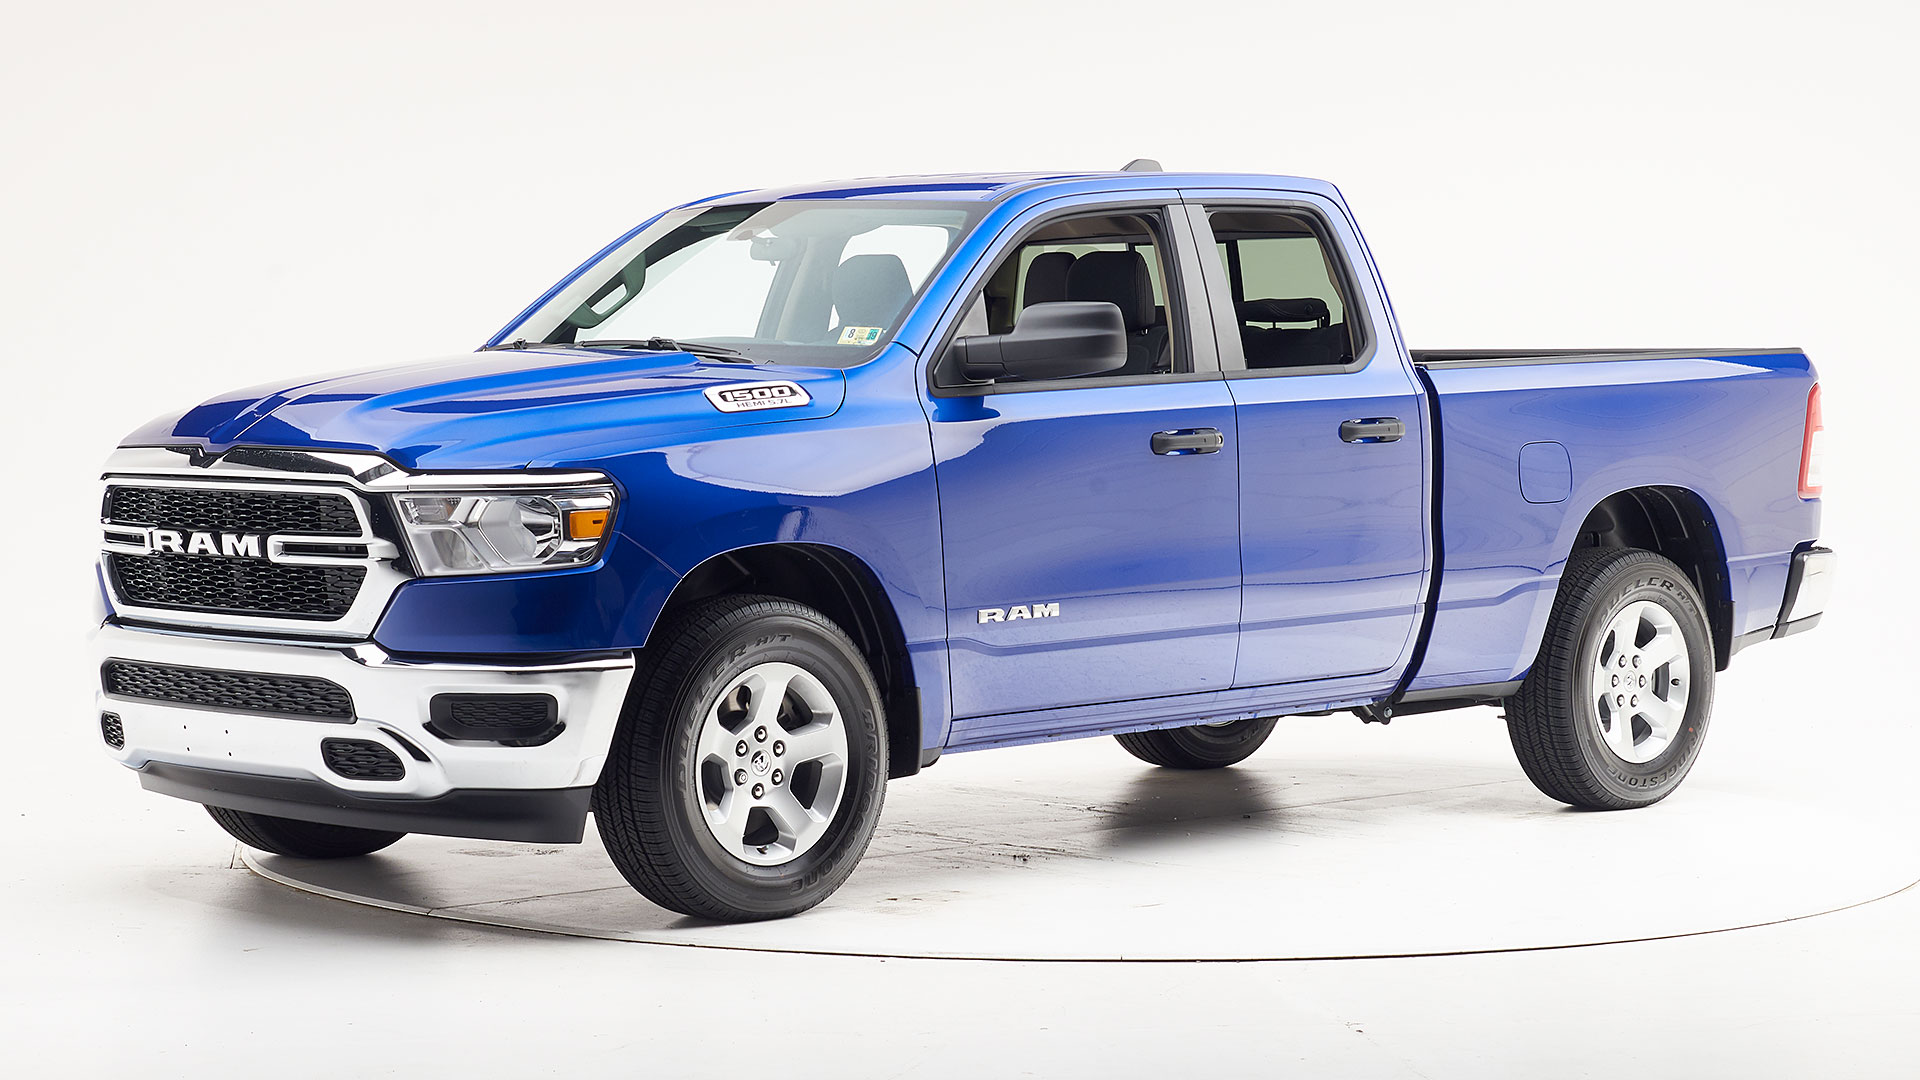 2020 Ram 1500 Extended cab pickup